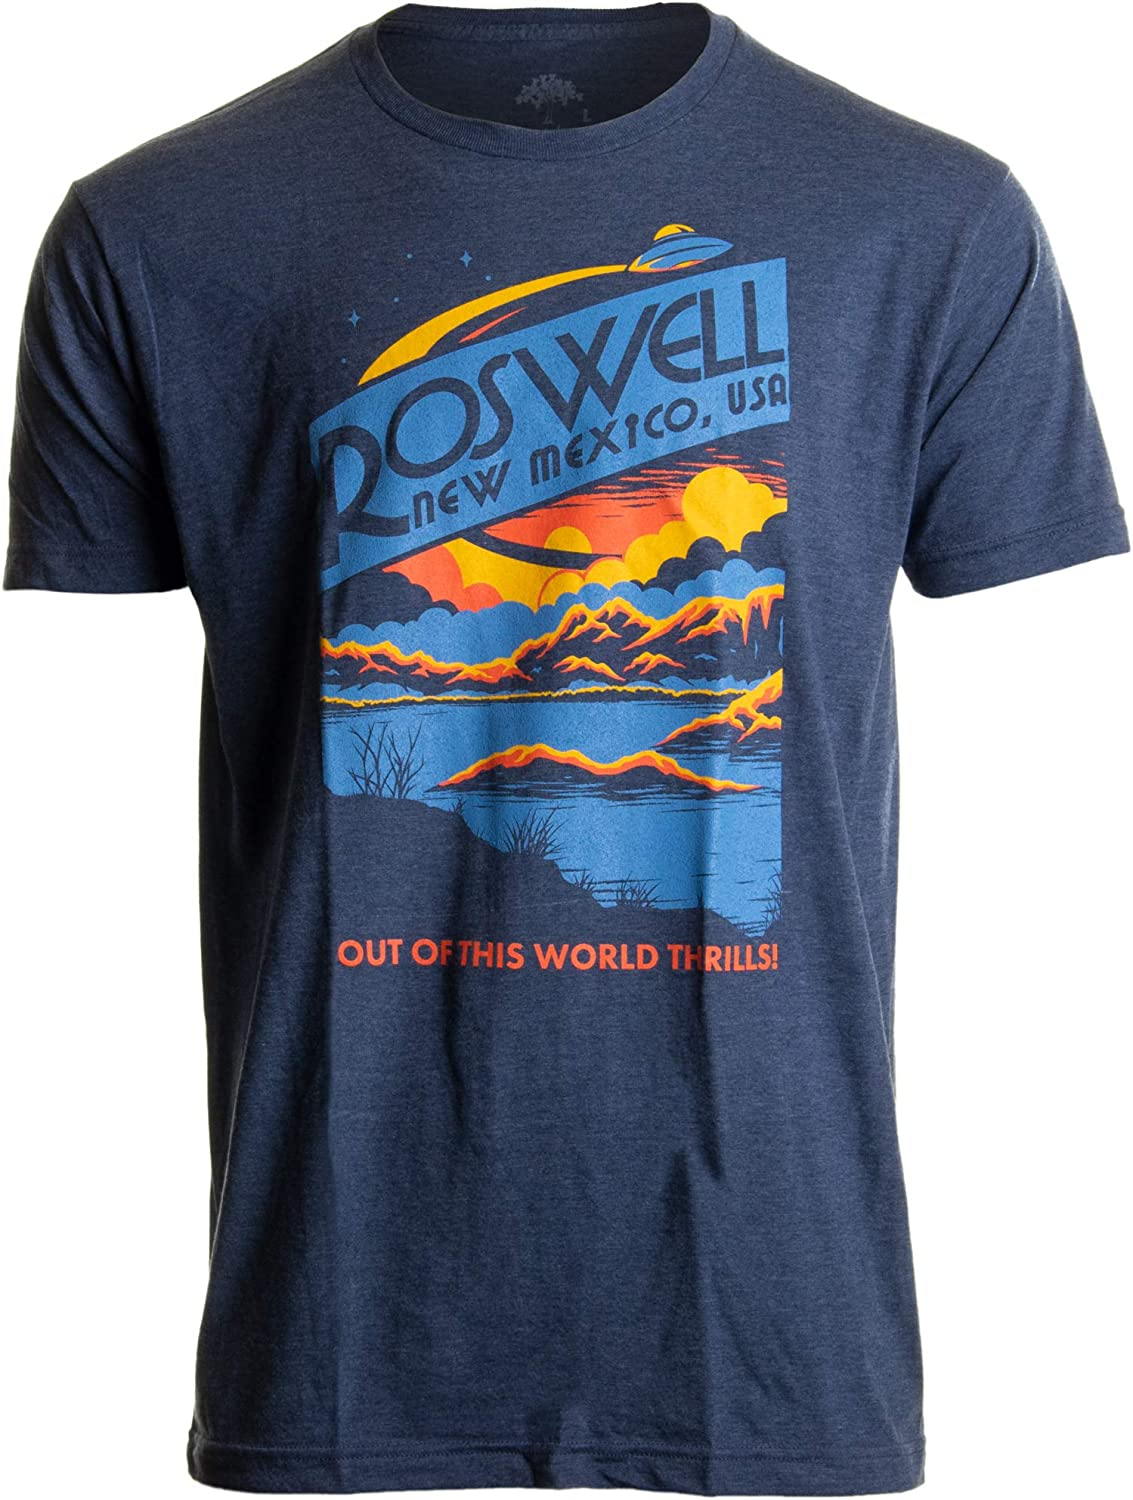 Roswell, NM Tourism | Funny Alien Extraterrestrial UFO Saucer Men Women T-Shirt